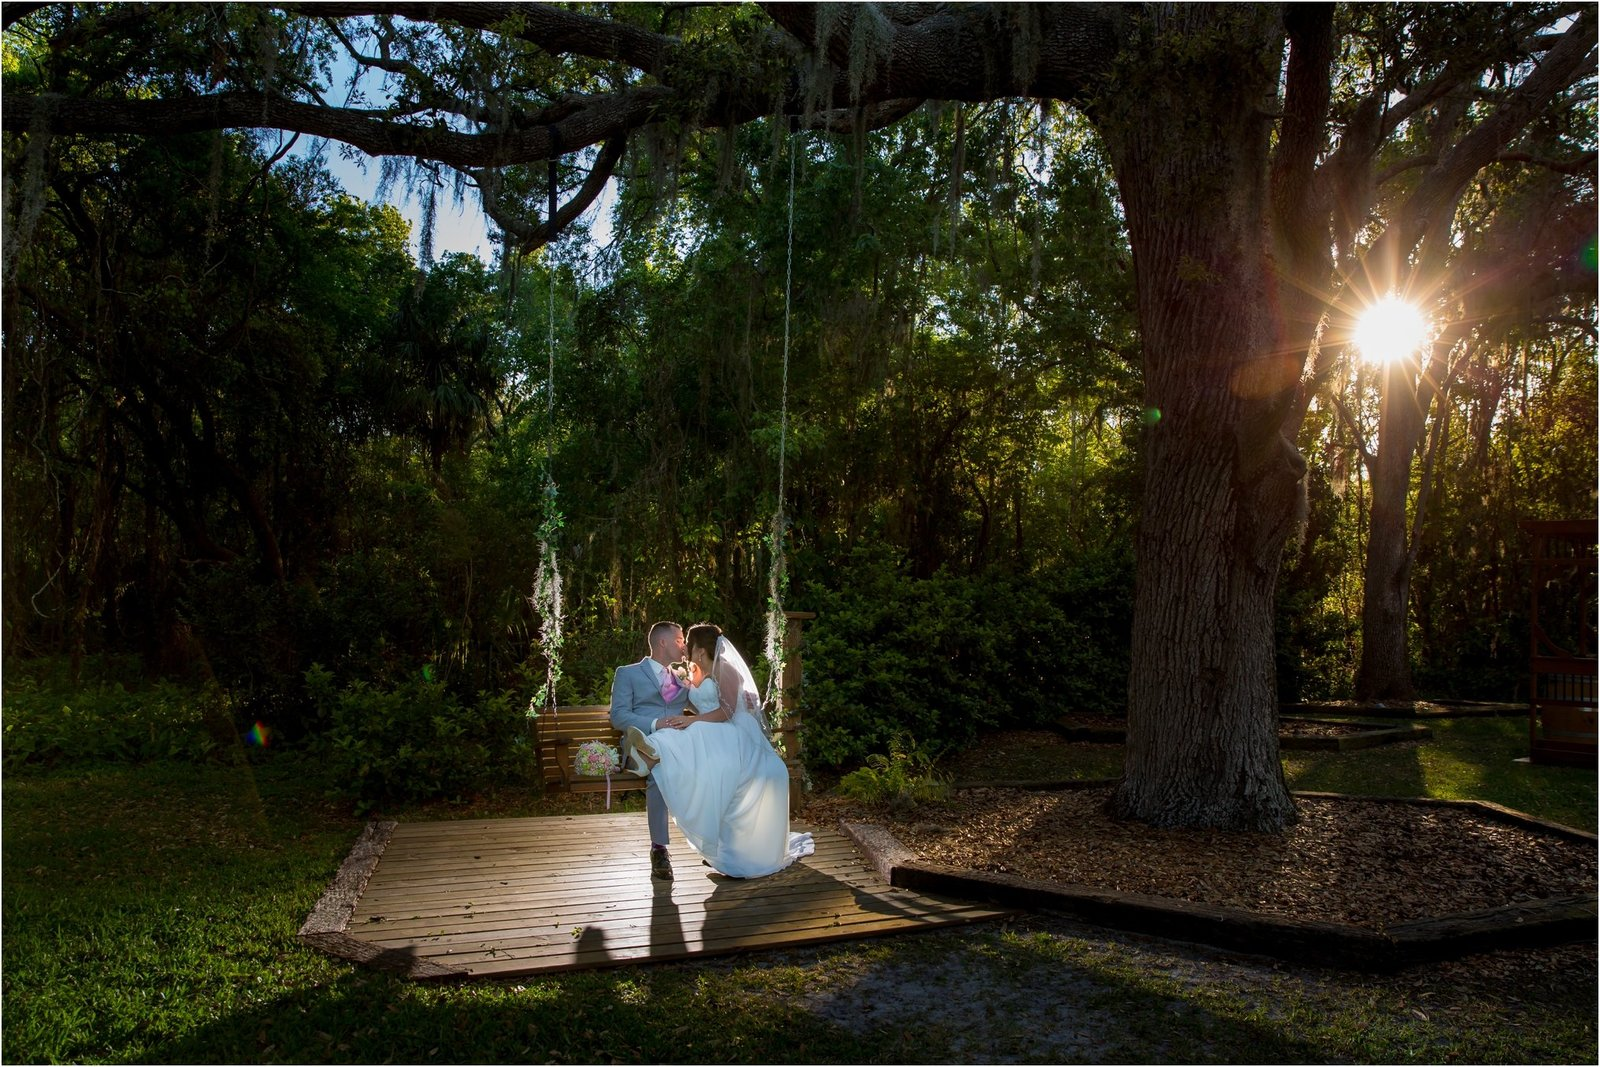 Bakers Ranch Wedding Photography of bride and groom kissing on the swing with backlight and sun peeking between the trees